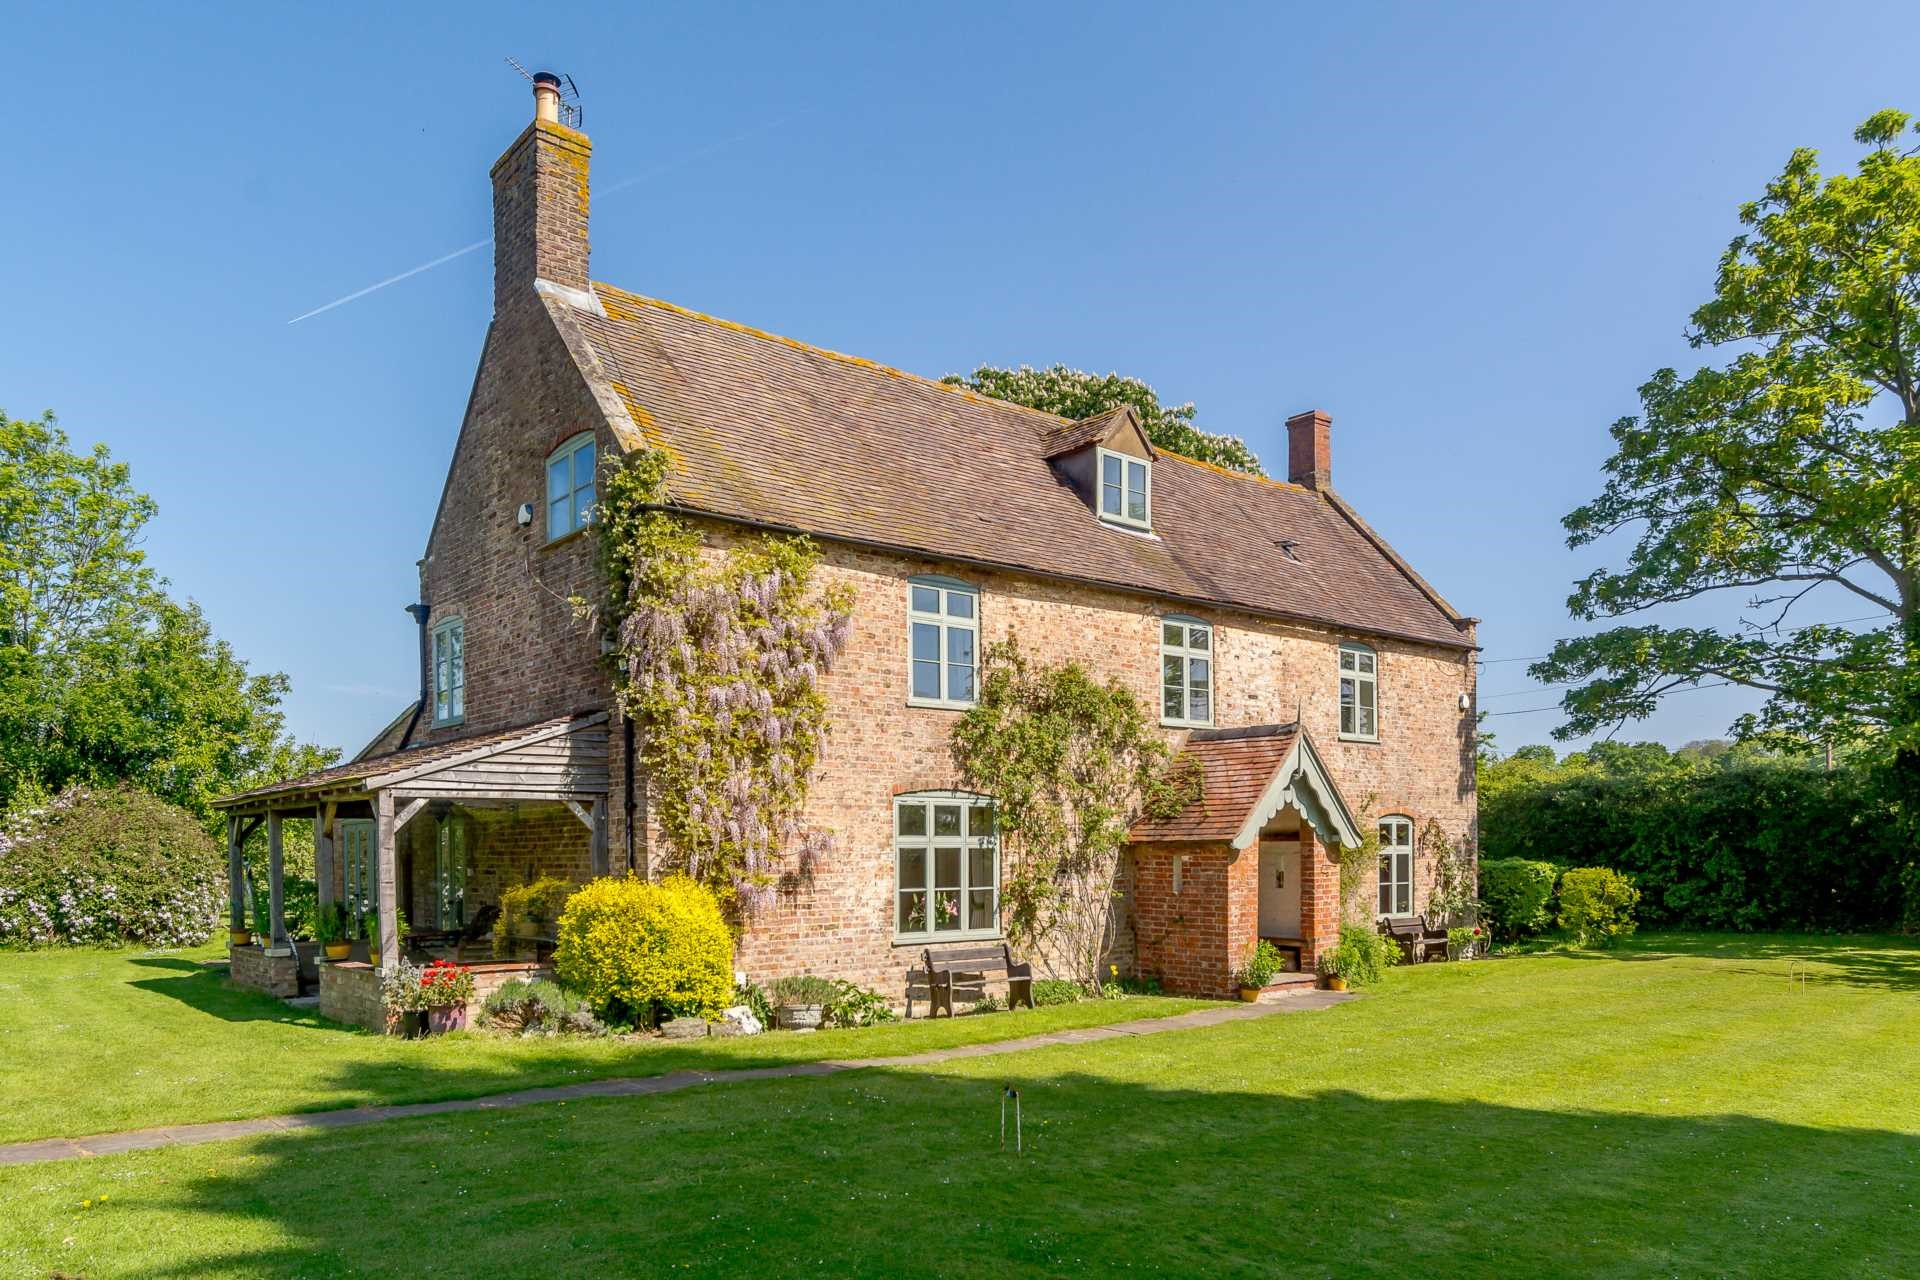 Grade II listed farmhouse 1700s character beautiful period country home